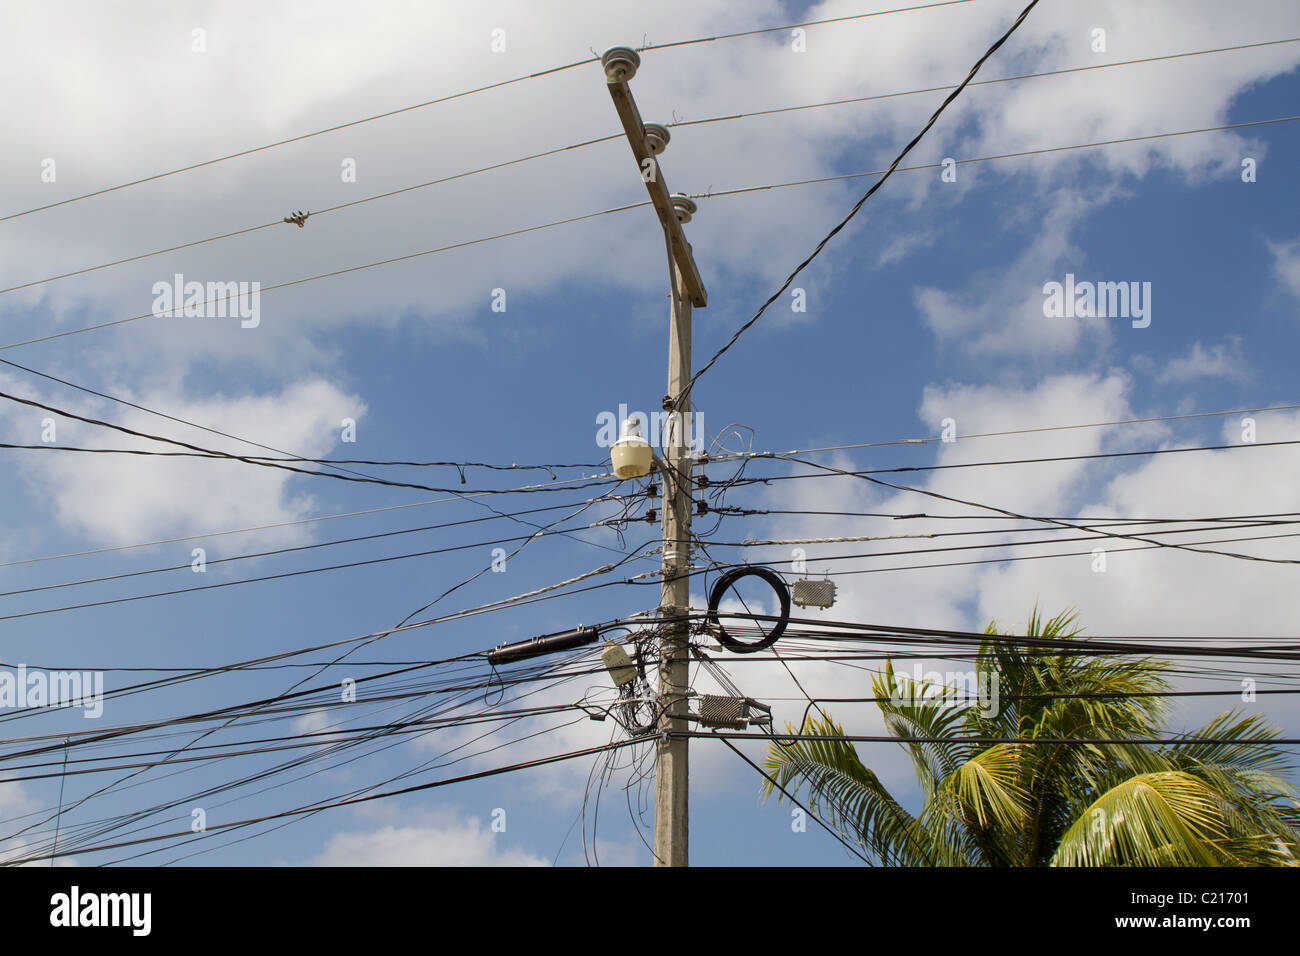 hight resolution of messy wires on an electric pillar in roatan honduras stock image